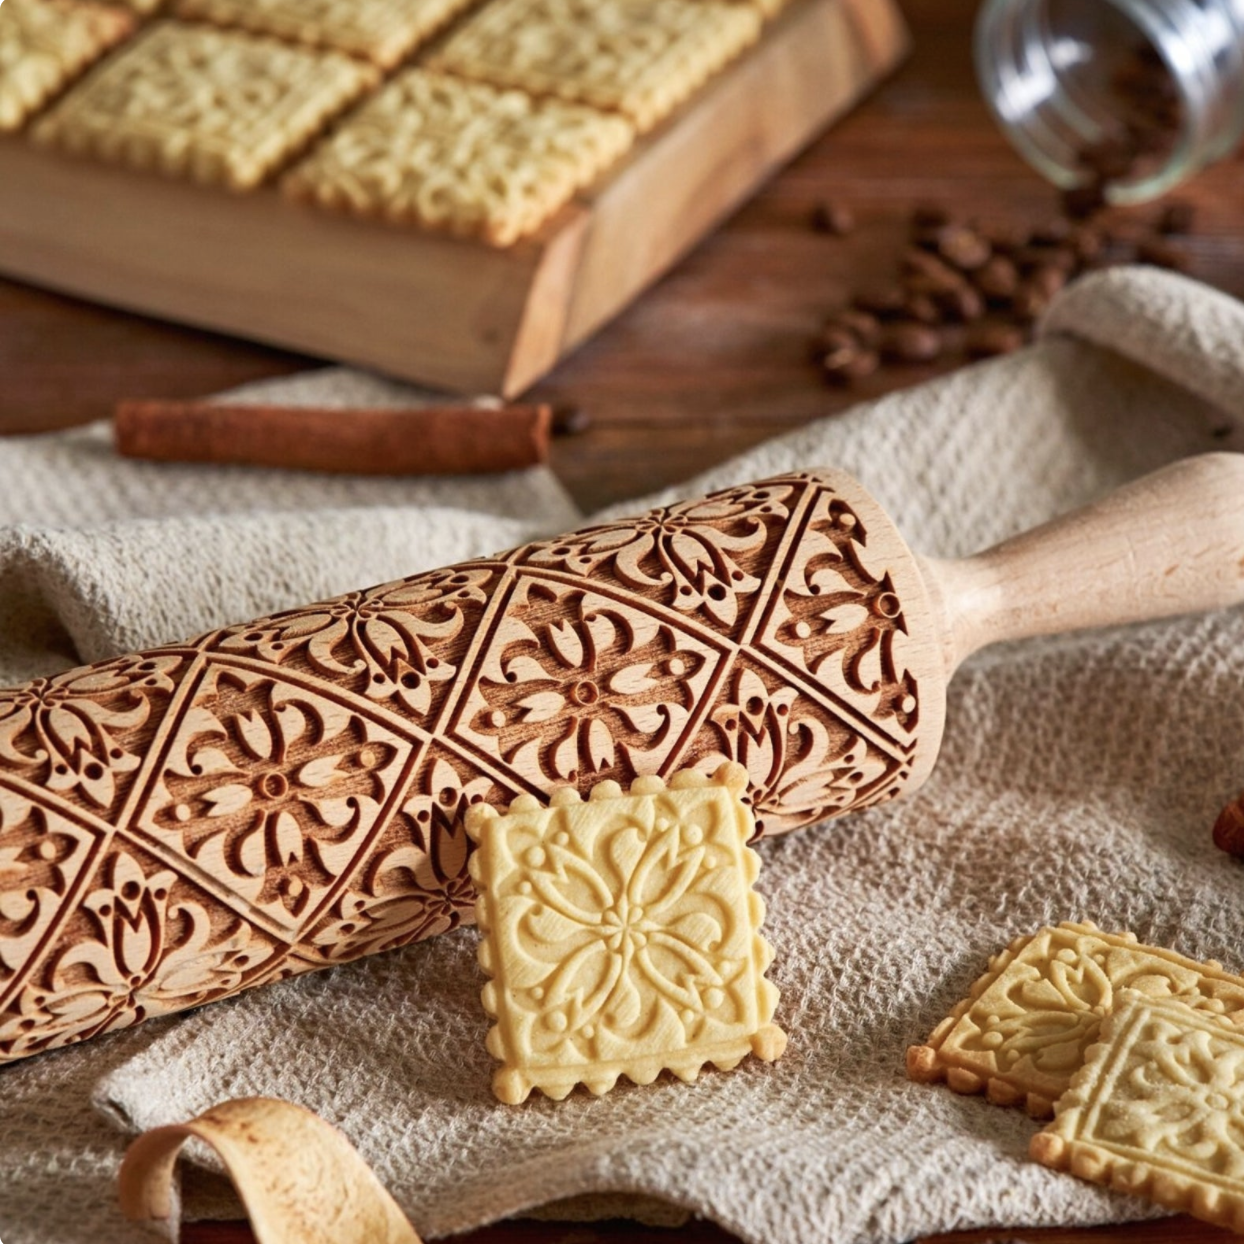 Mosaic rolling pin and decorative shortbread cookies